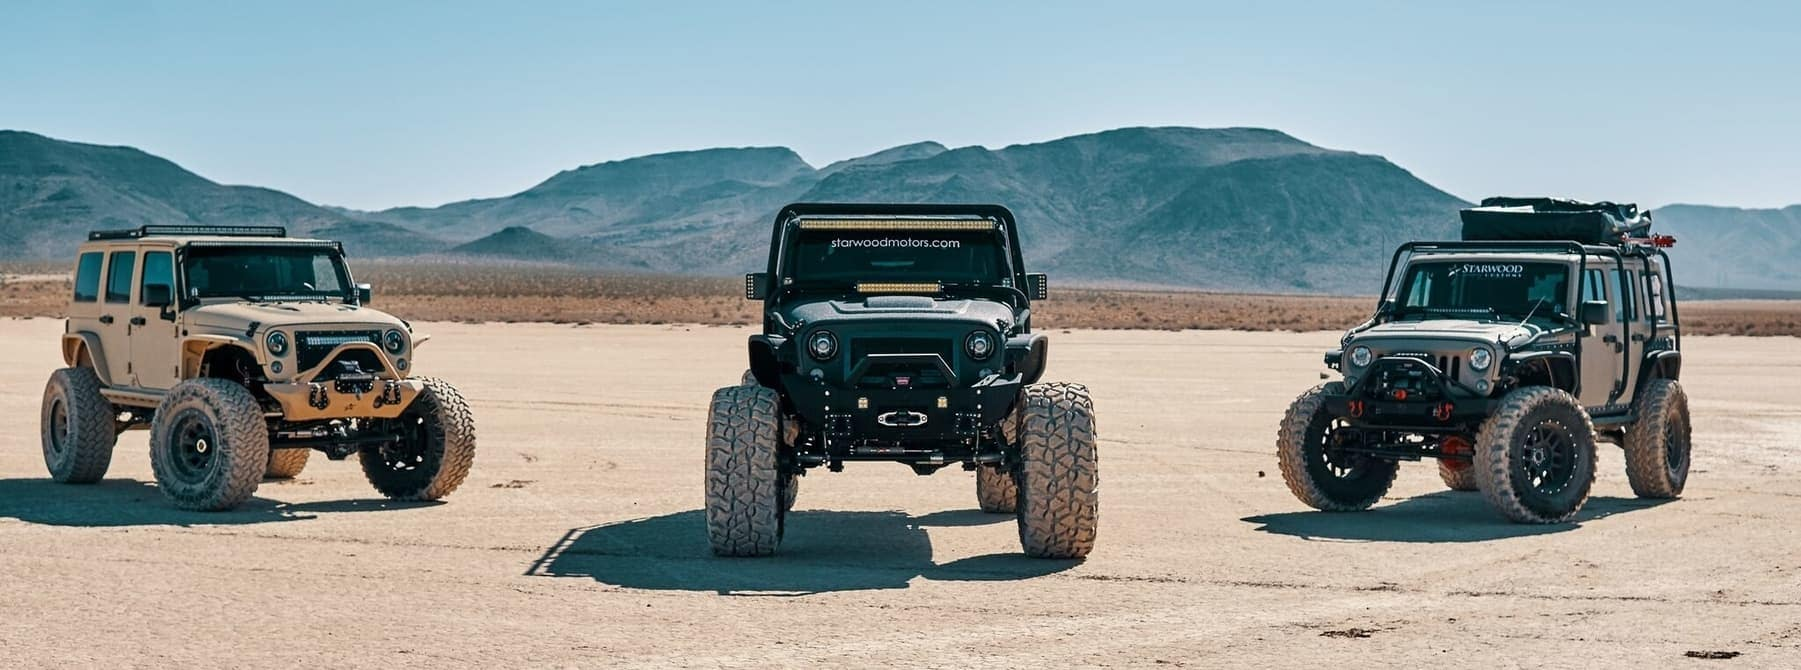 Starwood Motors custom jeep lineup of lifted jeeps